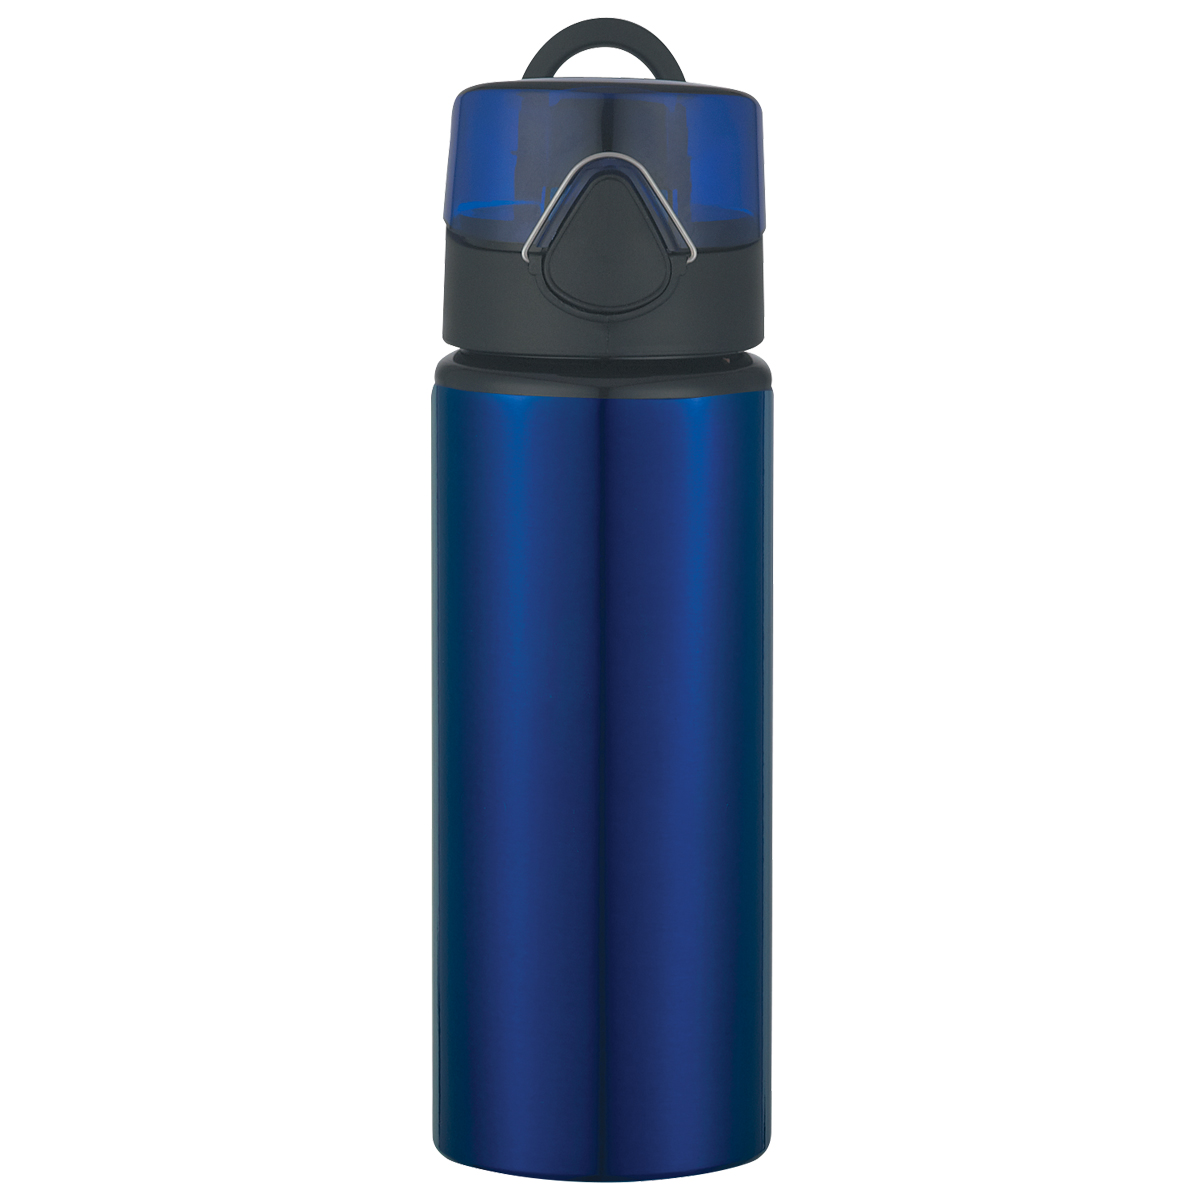 #CM 5704 - 25 Oz. Aluminum Sports Bottle With Flip-Top Lid